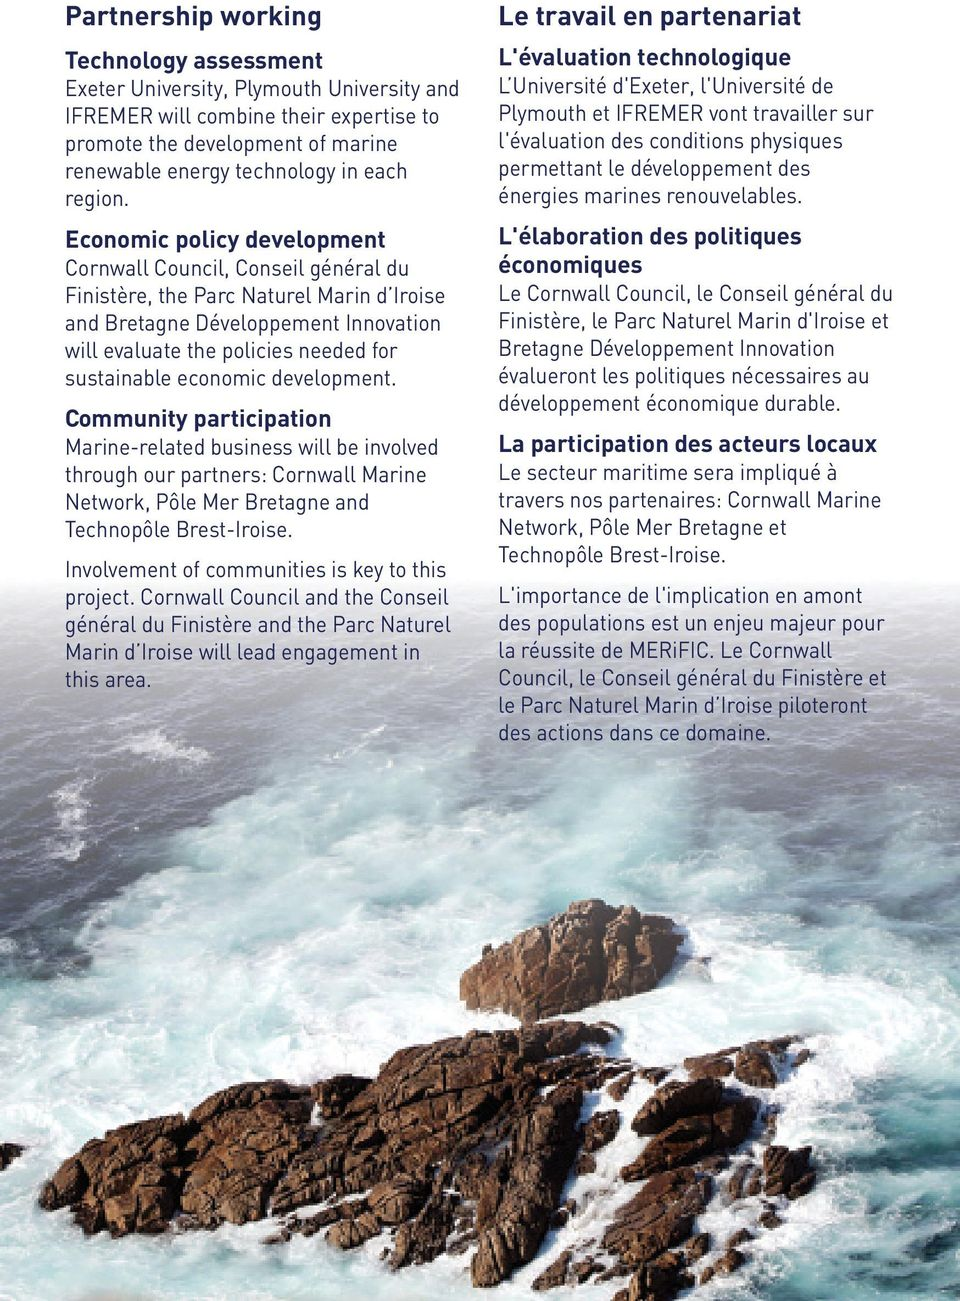 Economic policy development Cornwall Council, Conseil général du Finistère, the Parc Naturel Marin d Iroise and Bretagne Développement Innovation will evaluate the policies needed for sustainable